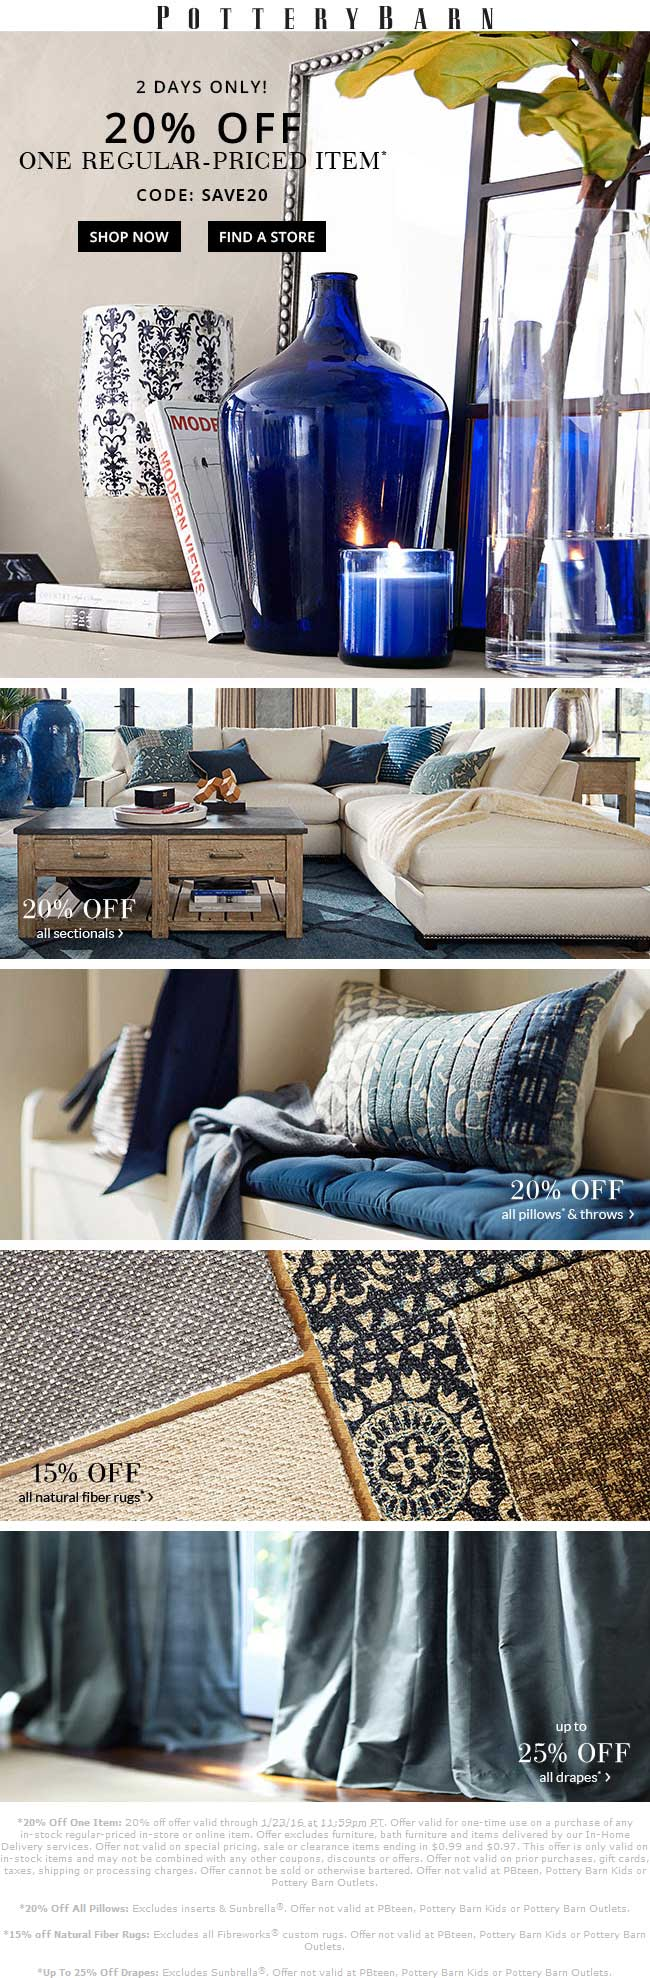 Pottery Barn Coupon August 2018 20% off a single item at Pottery Barn, or online via promo code SAVE20